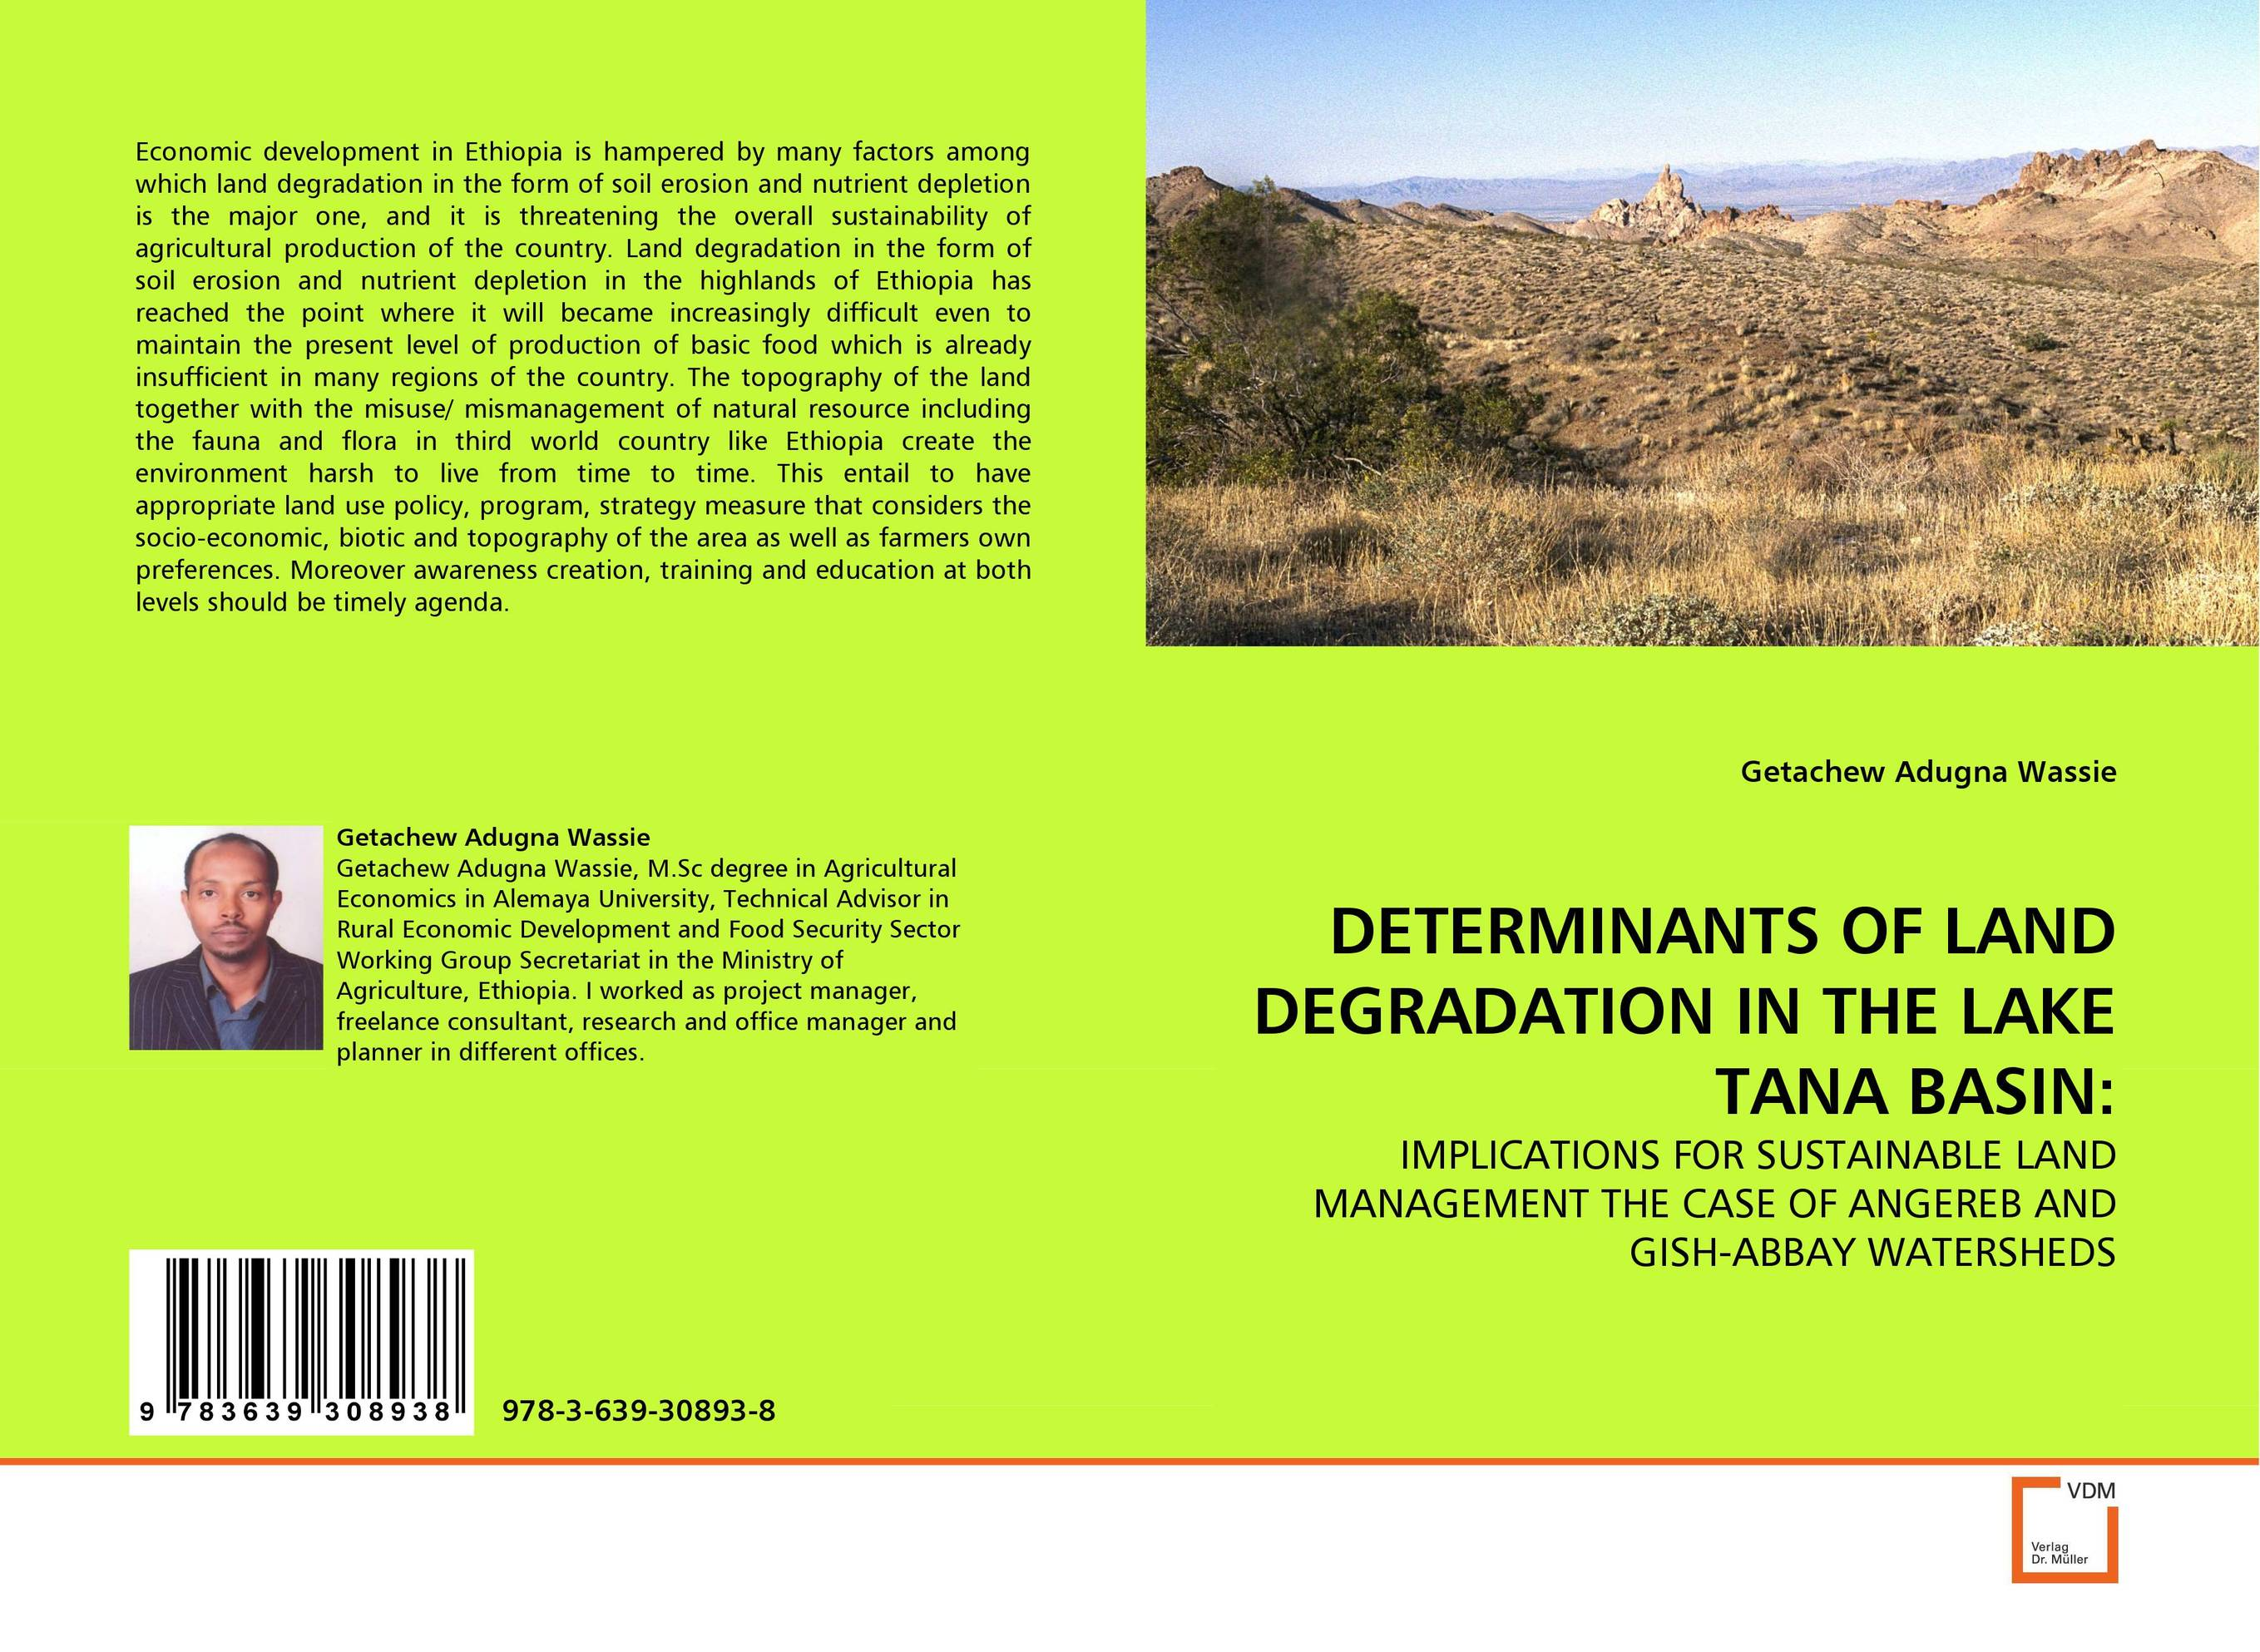 DETERMINANTS OF LAND DEGRADATION IN THE LAKE TANA BASIN: land degradation in the oromiya highlands in ethiopia